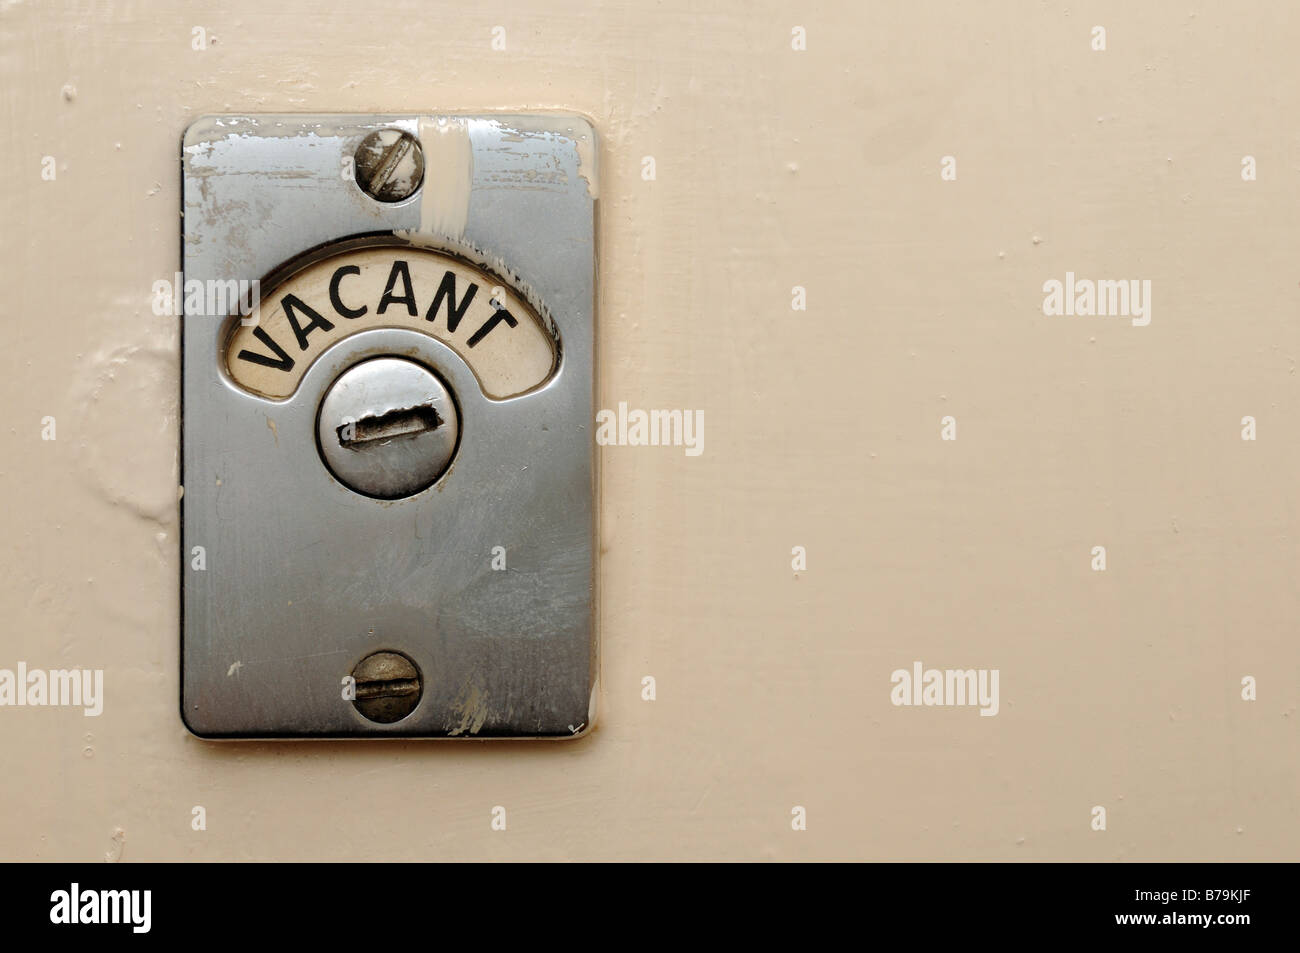 Bathroom Door Signs Vacant vacant toilet door lock stock photo, royalty free image: 21725943